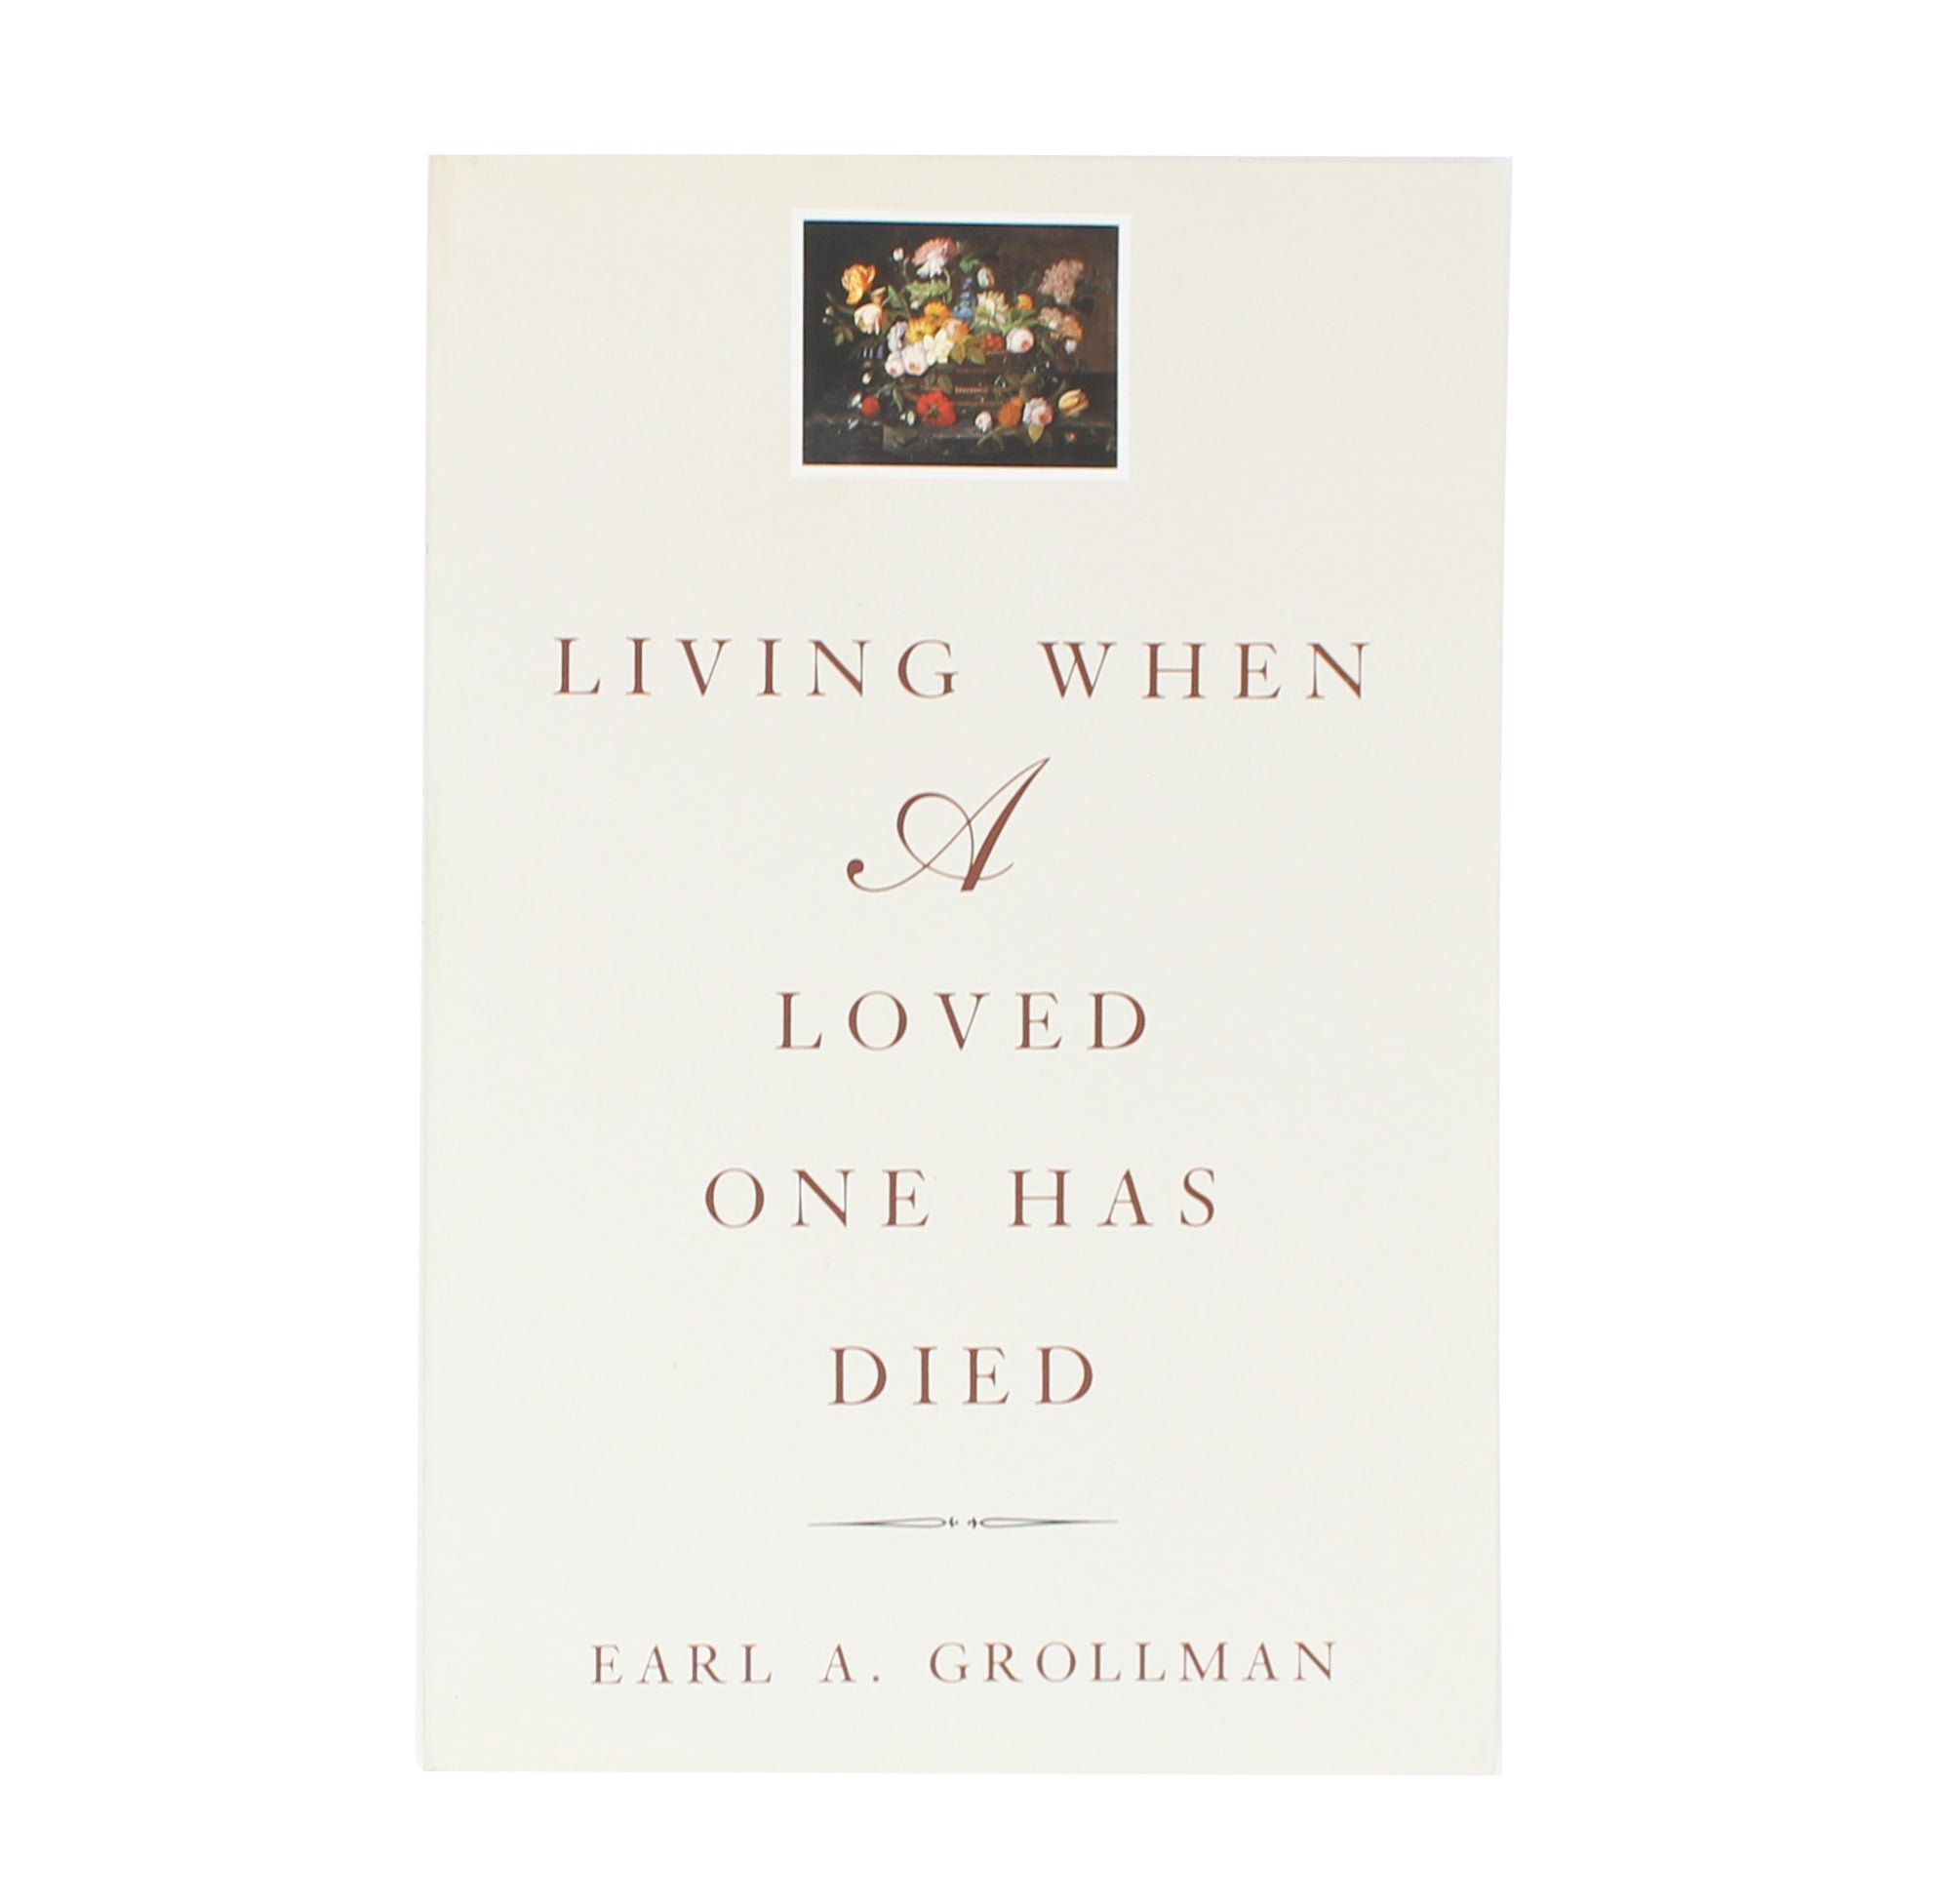 Living When Loved One Has Died